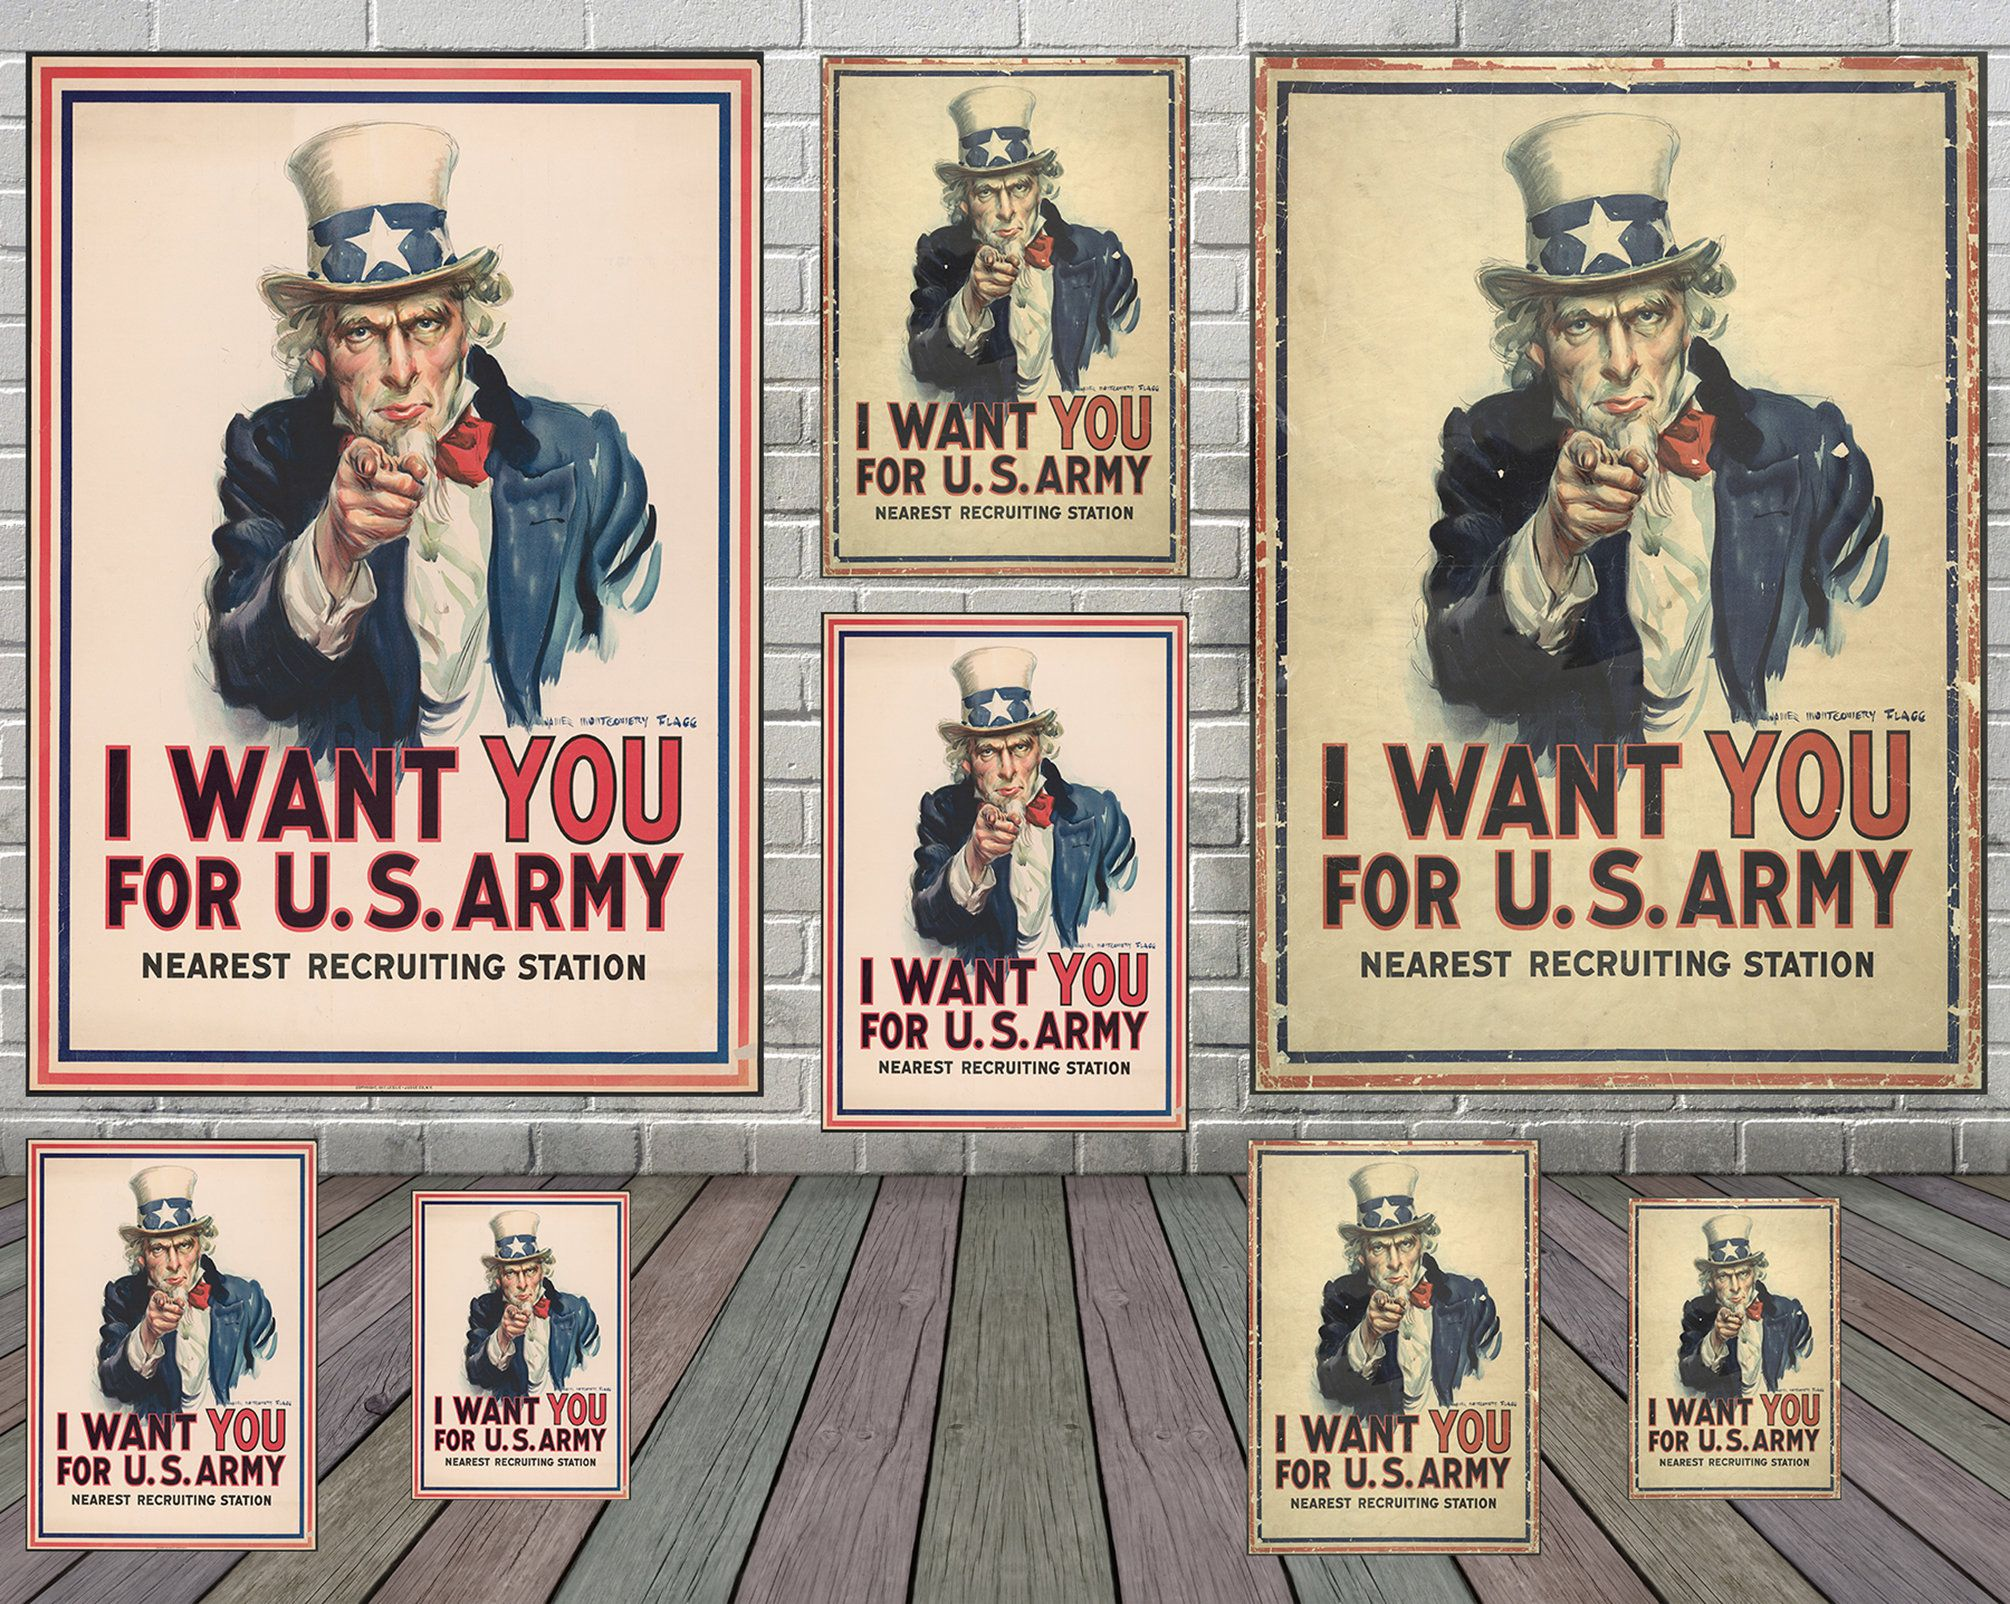 I Want You For Us Army Vintage Poster By James Montgomery Flagg James Montgomery Flagg Vintage Poster Retro Poster Unc Vintage Posters Uncle Sam Korean Art